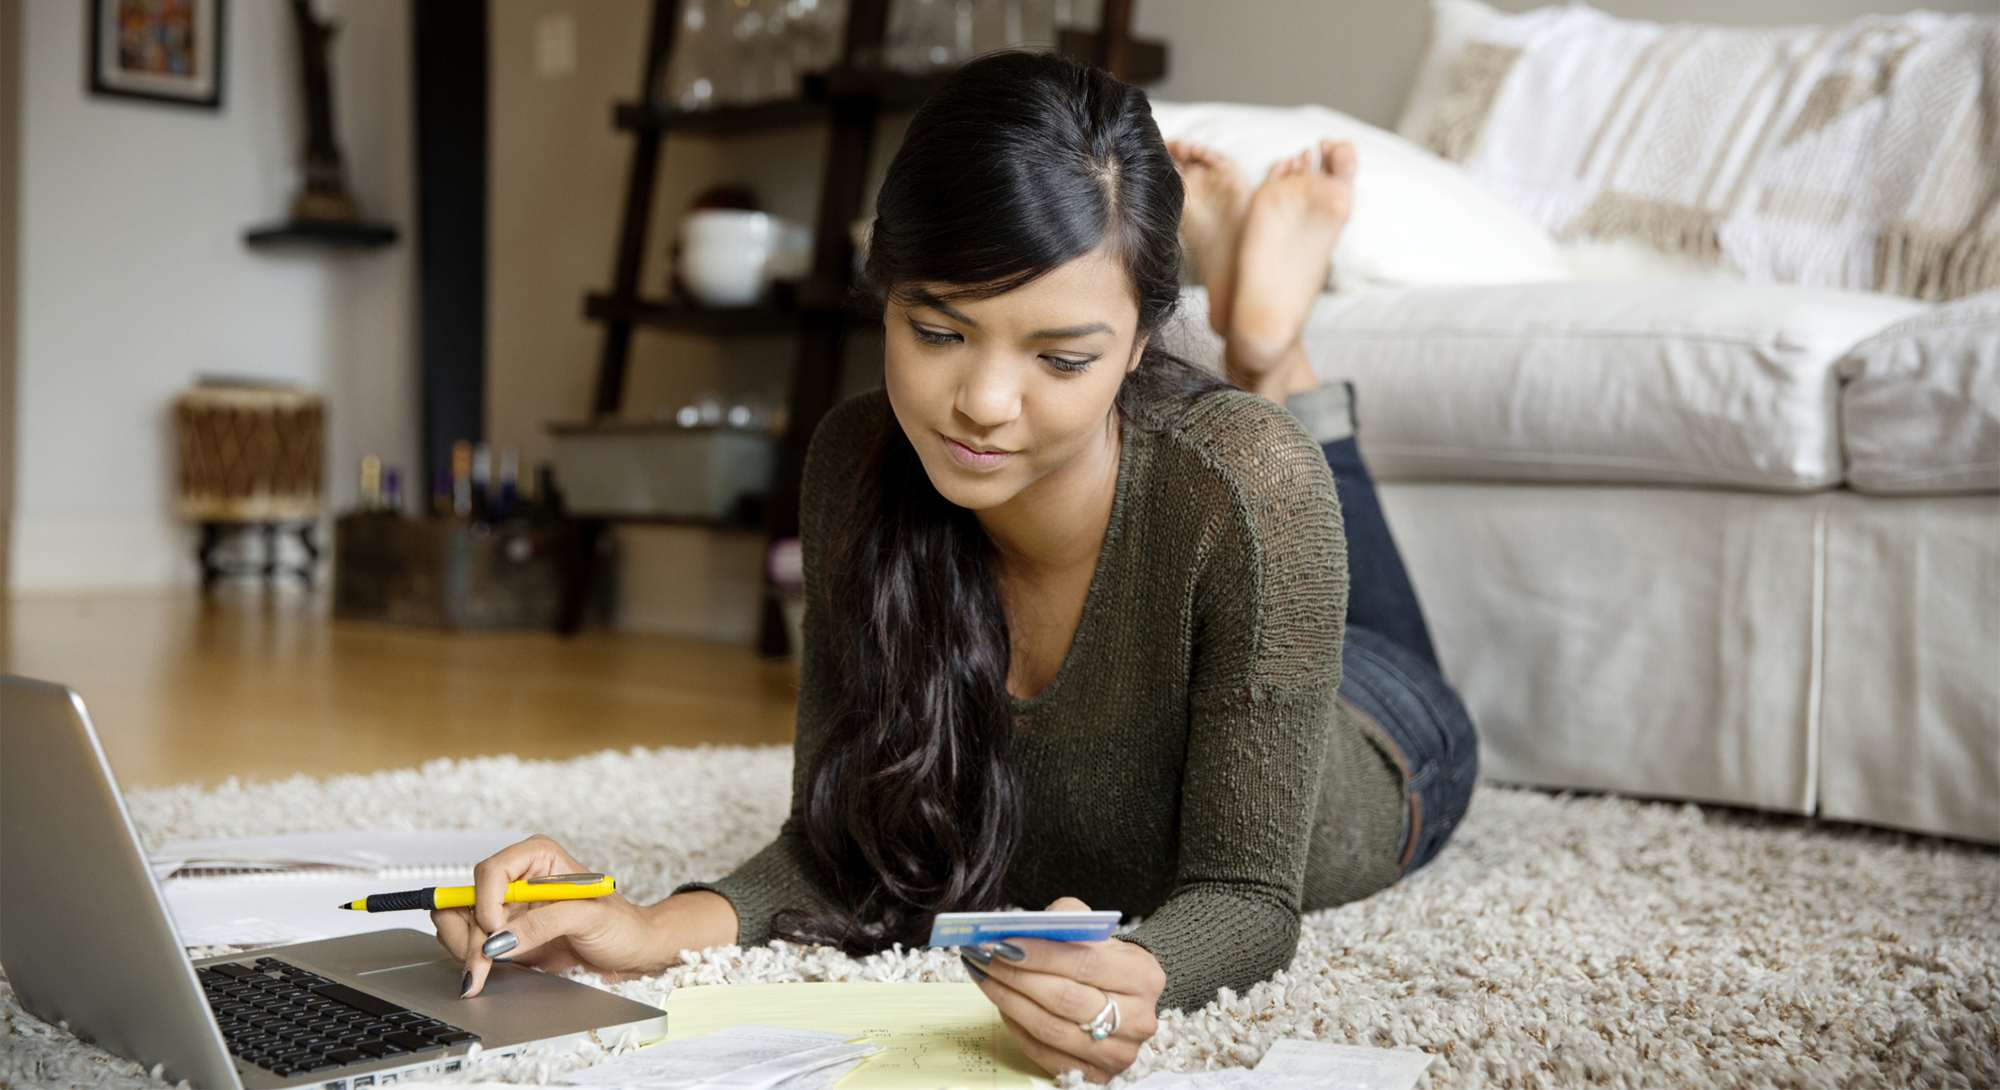 Young woman using credit card to pay online bills